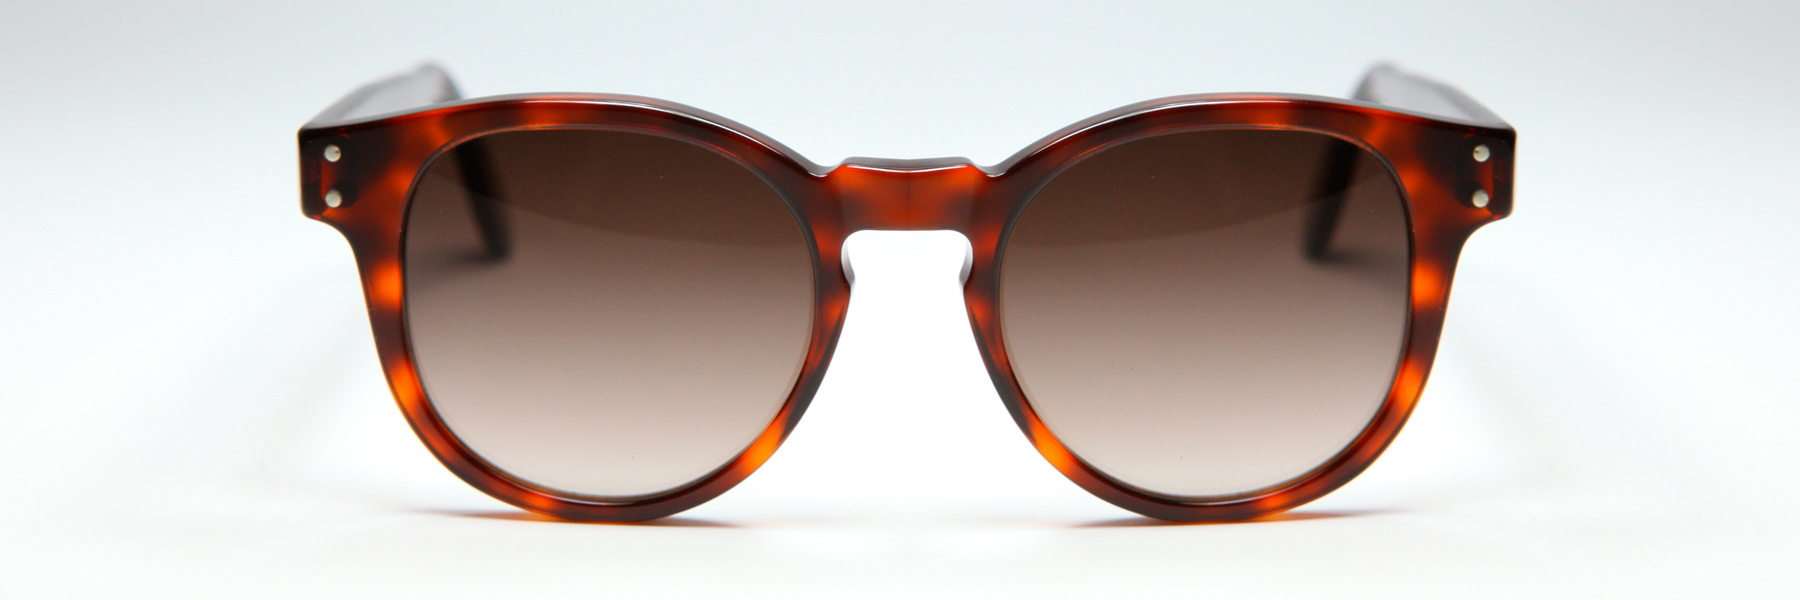 Wilde_Sunglasses_bigsur_Handmade_BArcelona_best_Sunglasses_2018_Brand_MAdrid_5.jpg